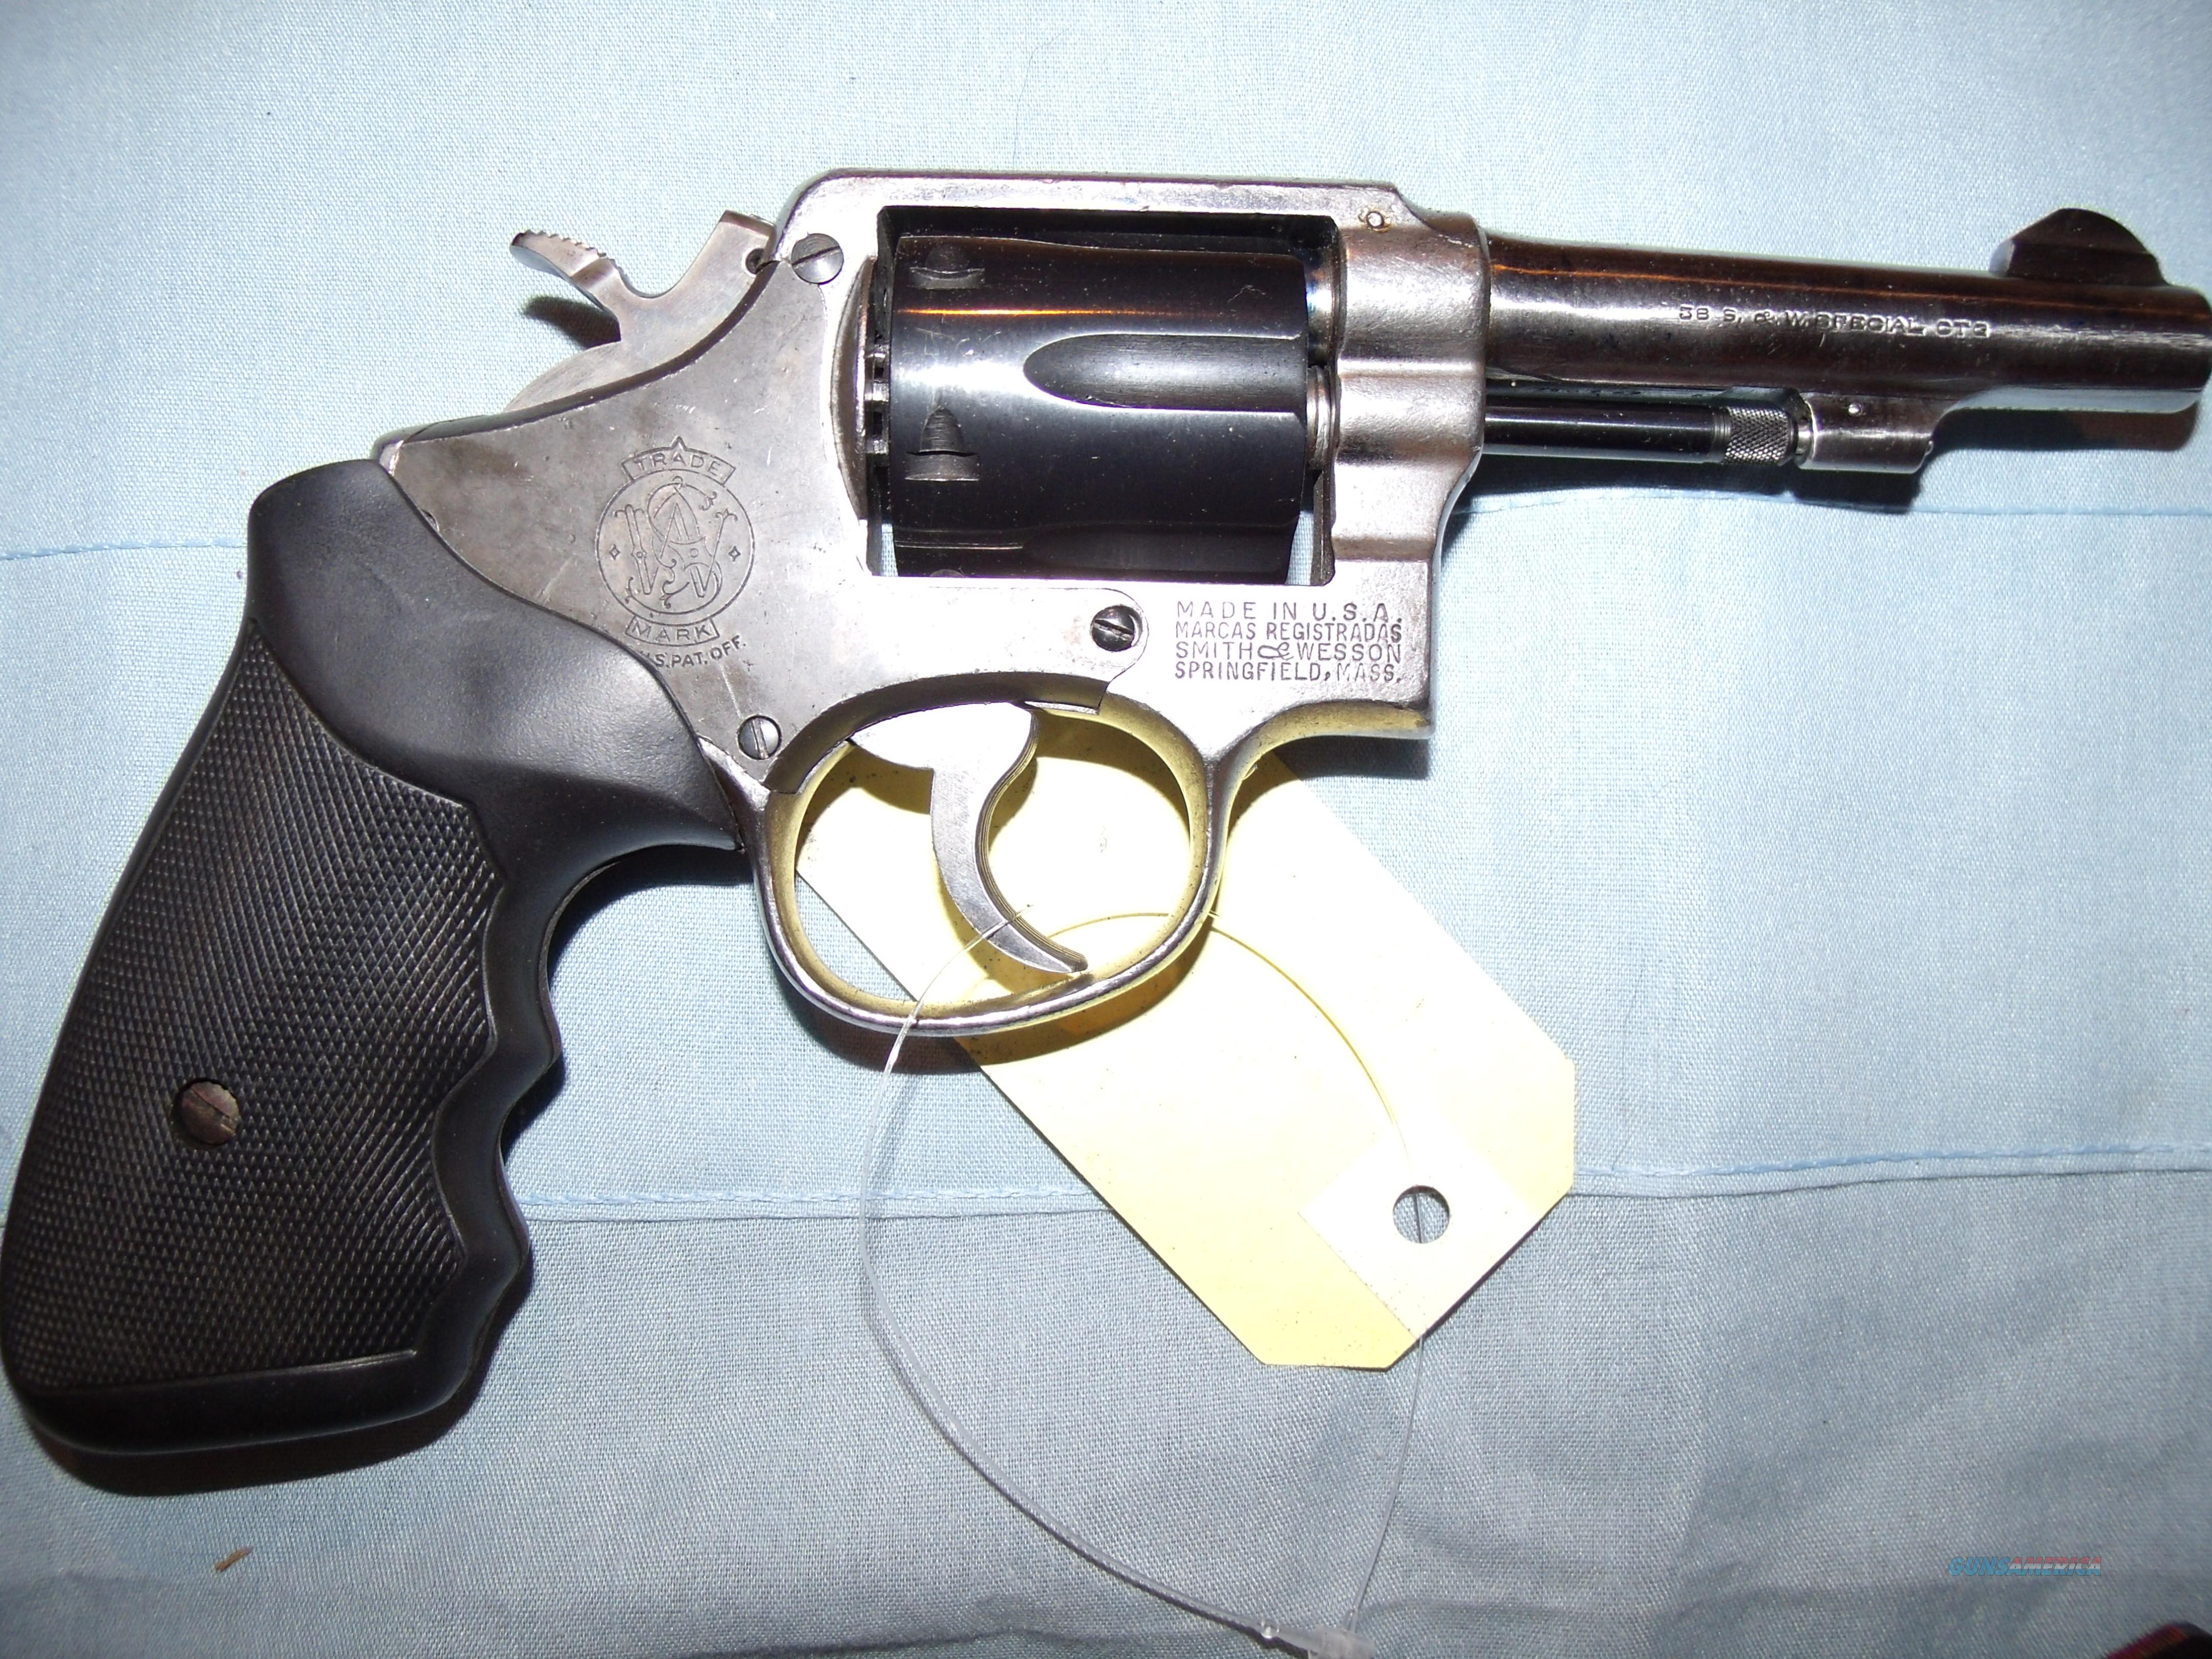 S&W M&P MODEL OF 1905 4TH CHANGE ,.38SPECIAL  Guns > Pistols > Smith & Wesson Revolvers > Pre-1945